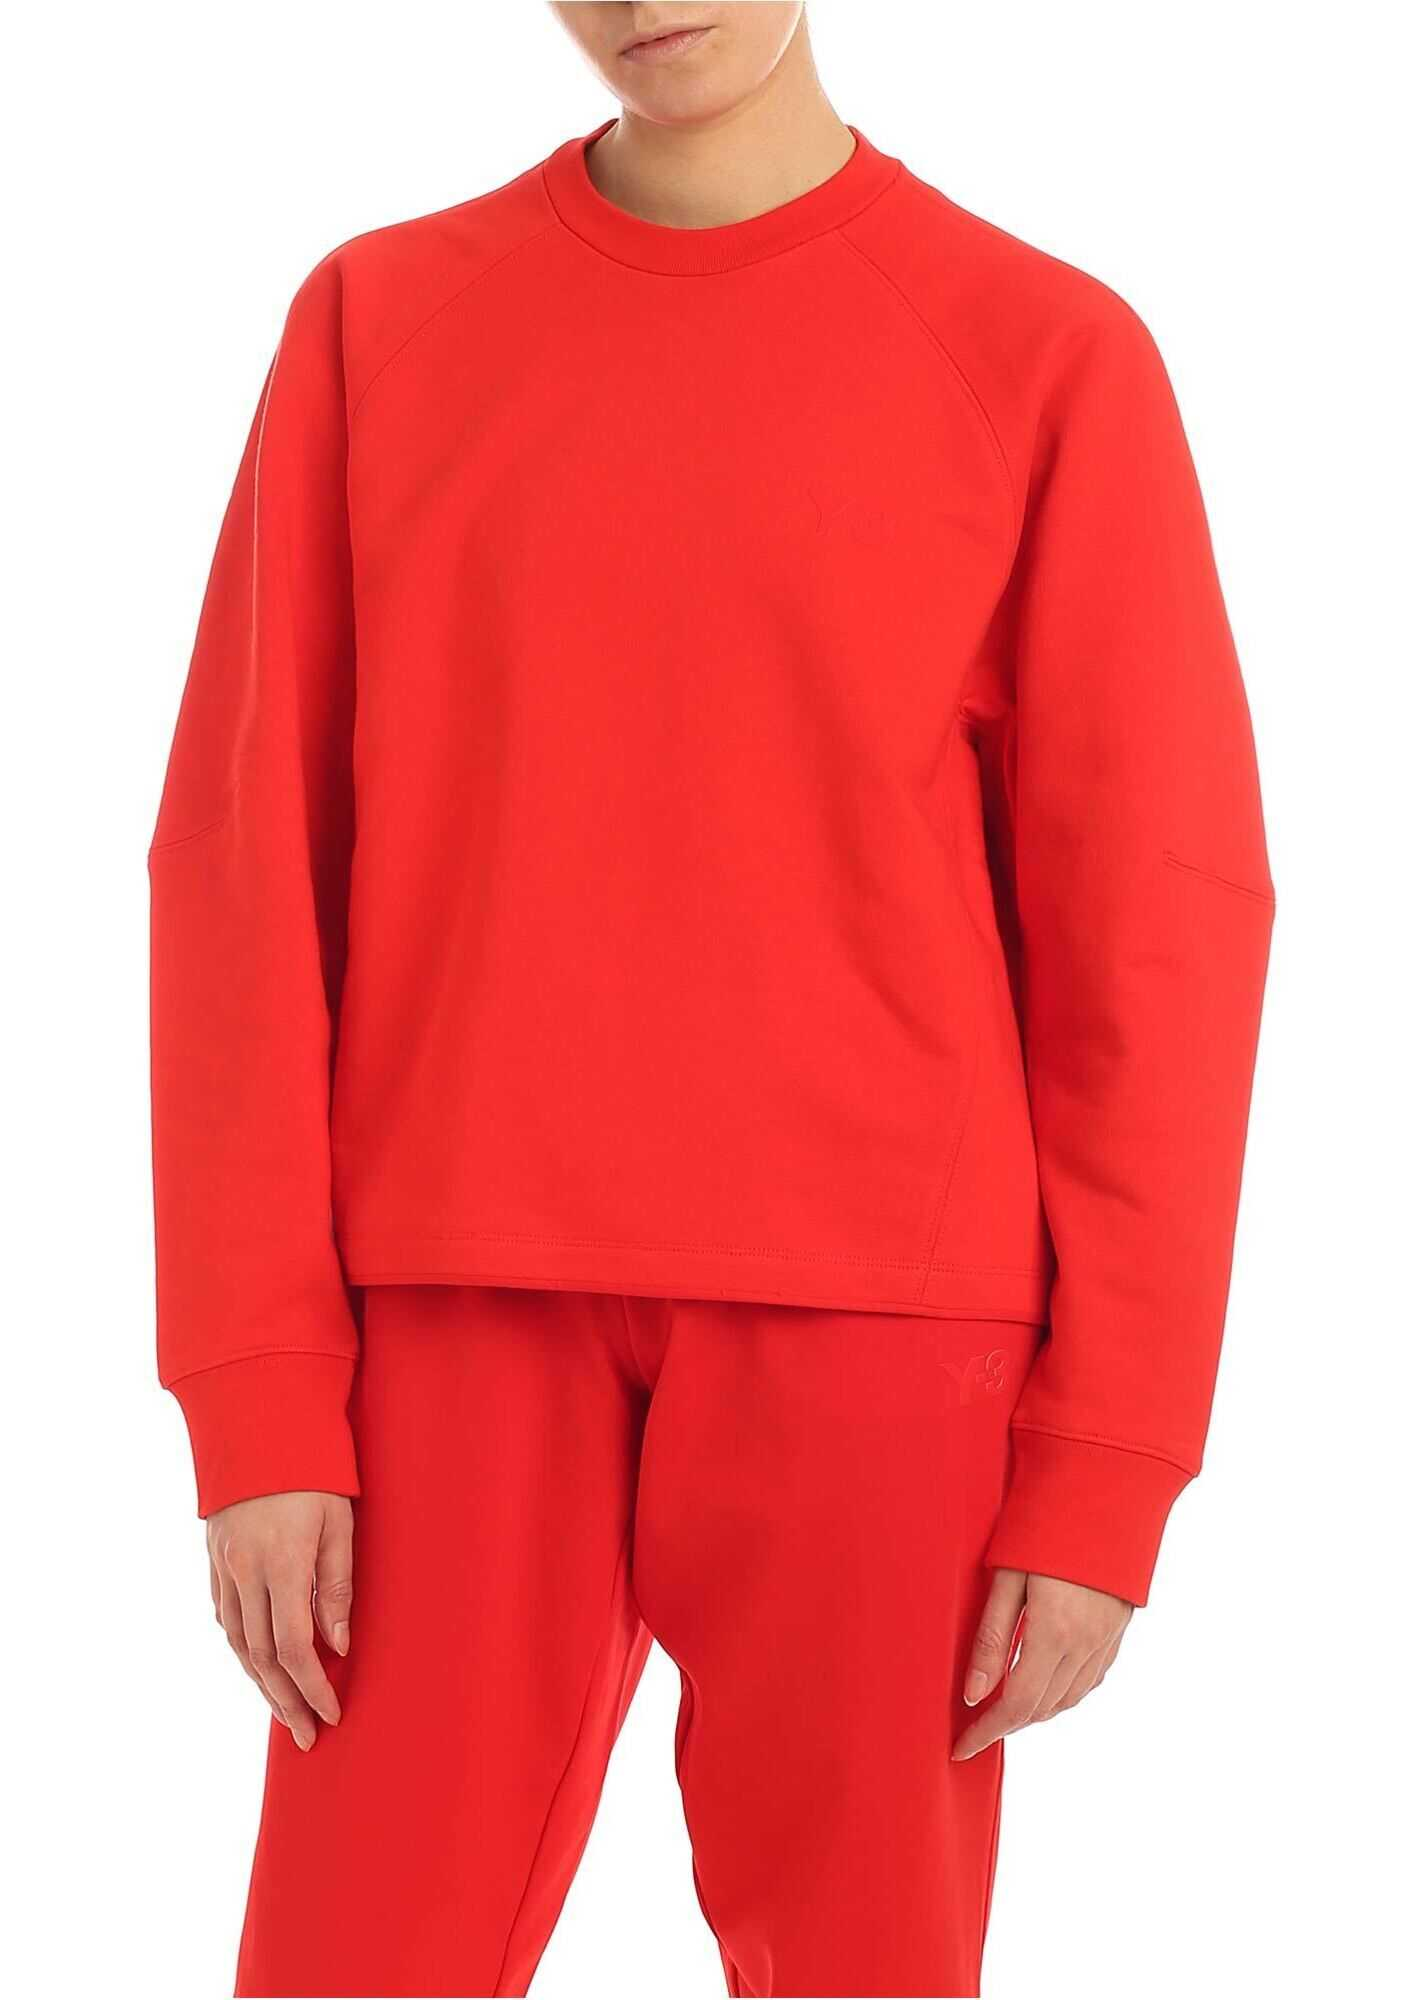 Y-3 Classic Sweatshirt In Red Red